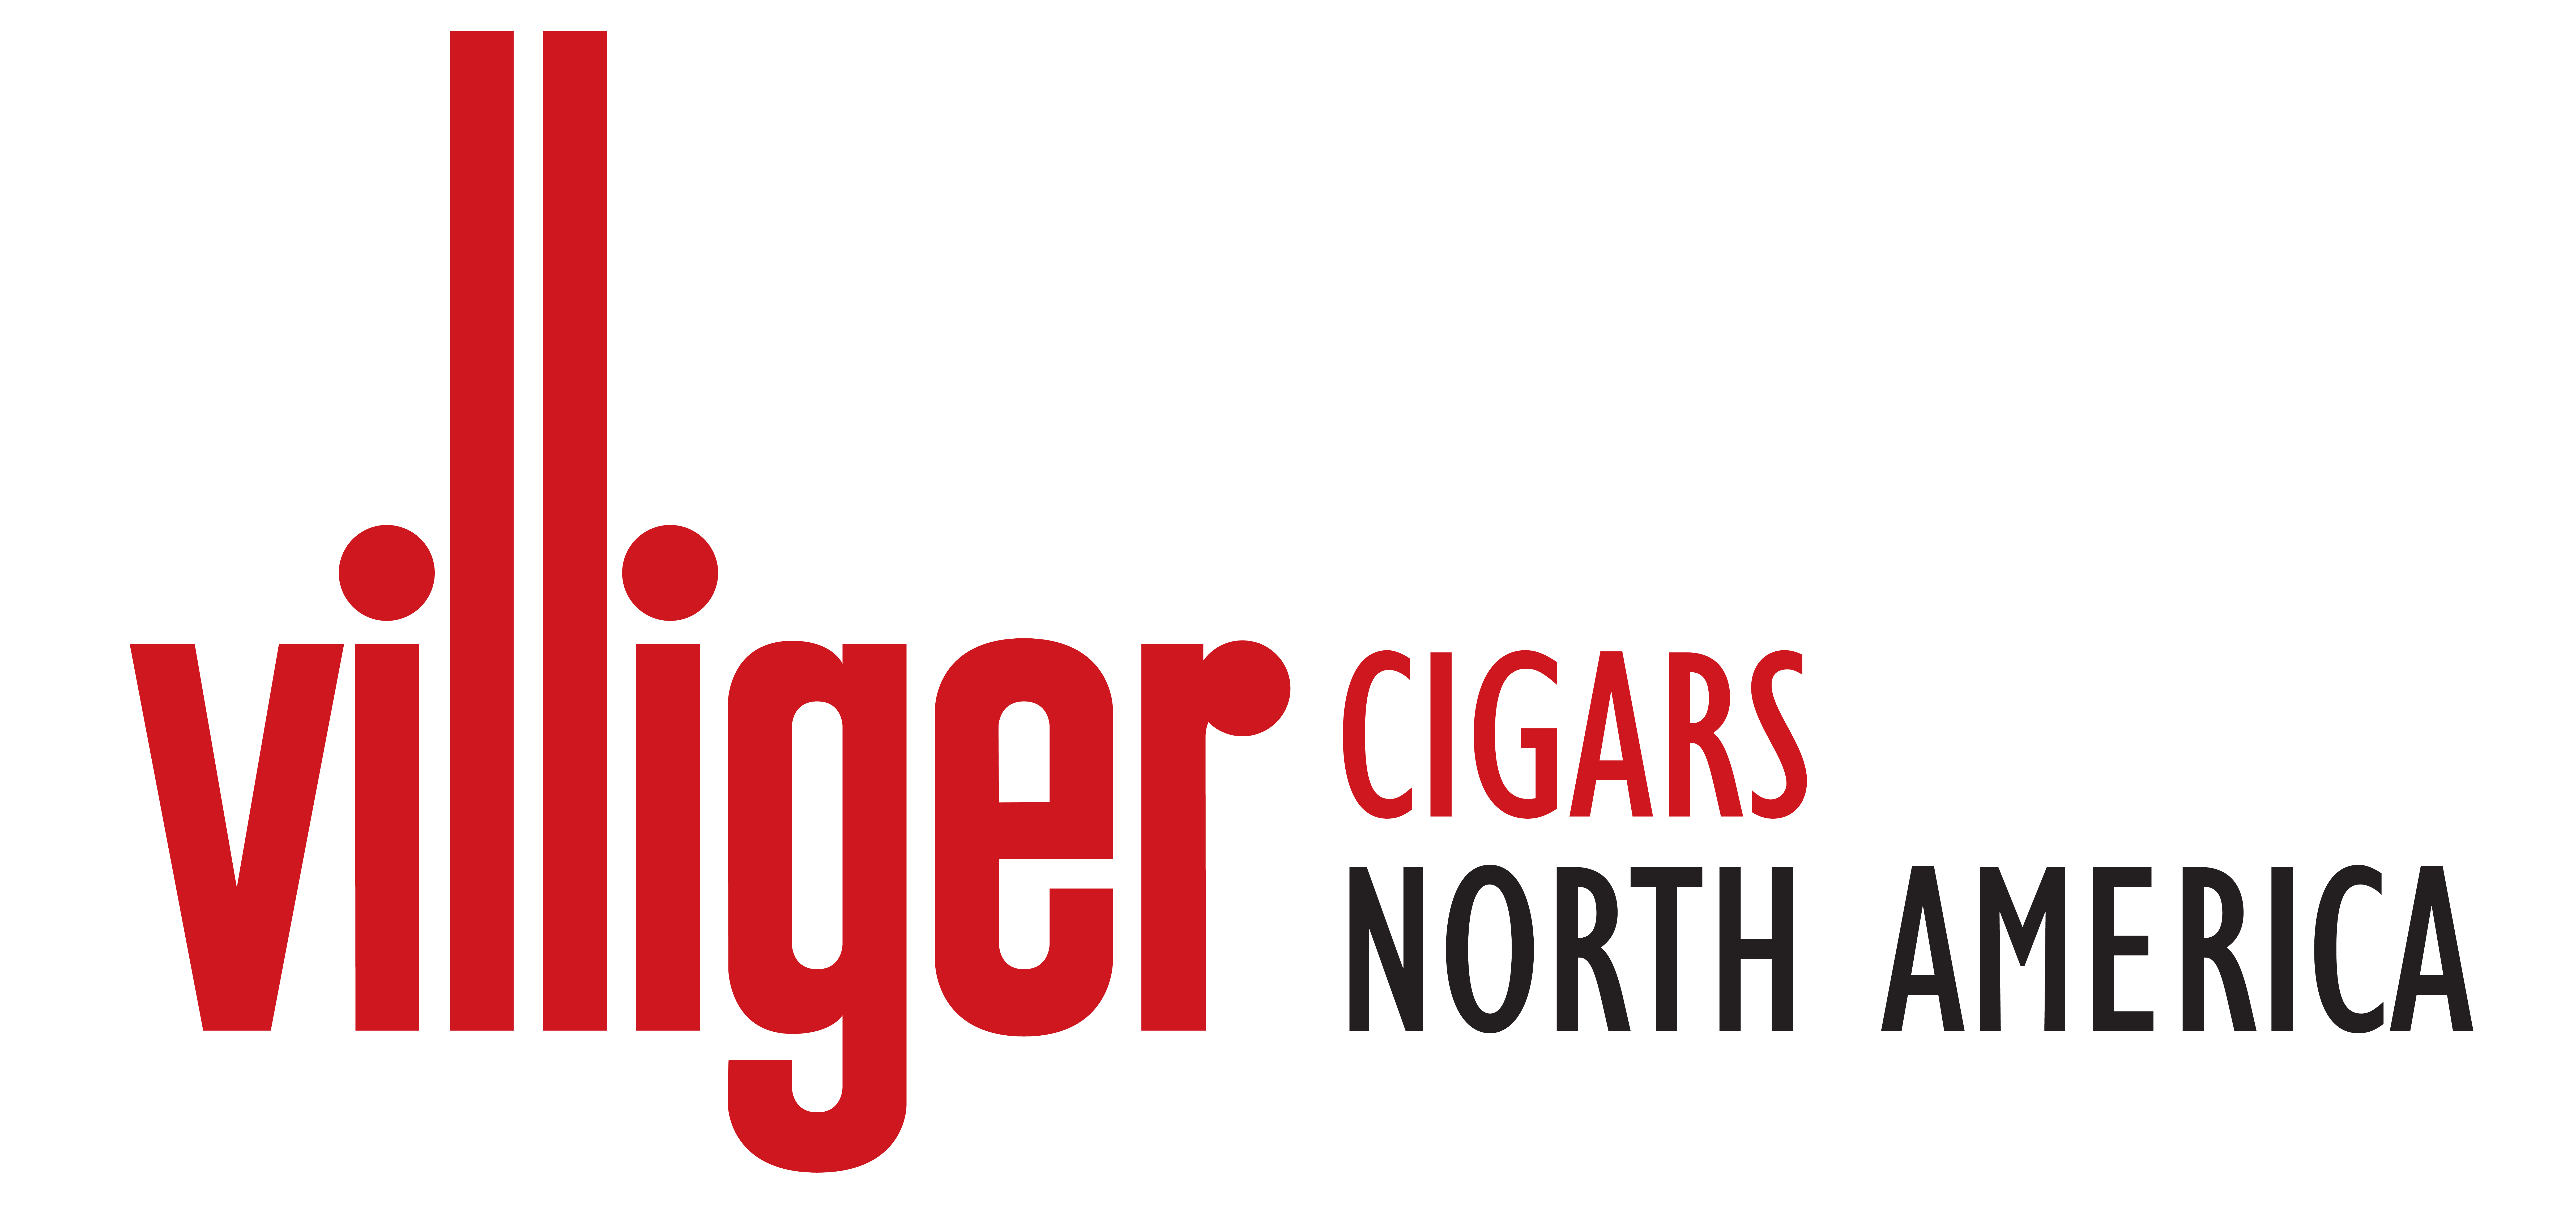 Feature Story: Villiger North America Moves Forward at 2016 IPCPR Trade Show